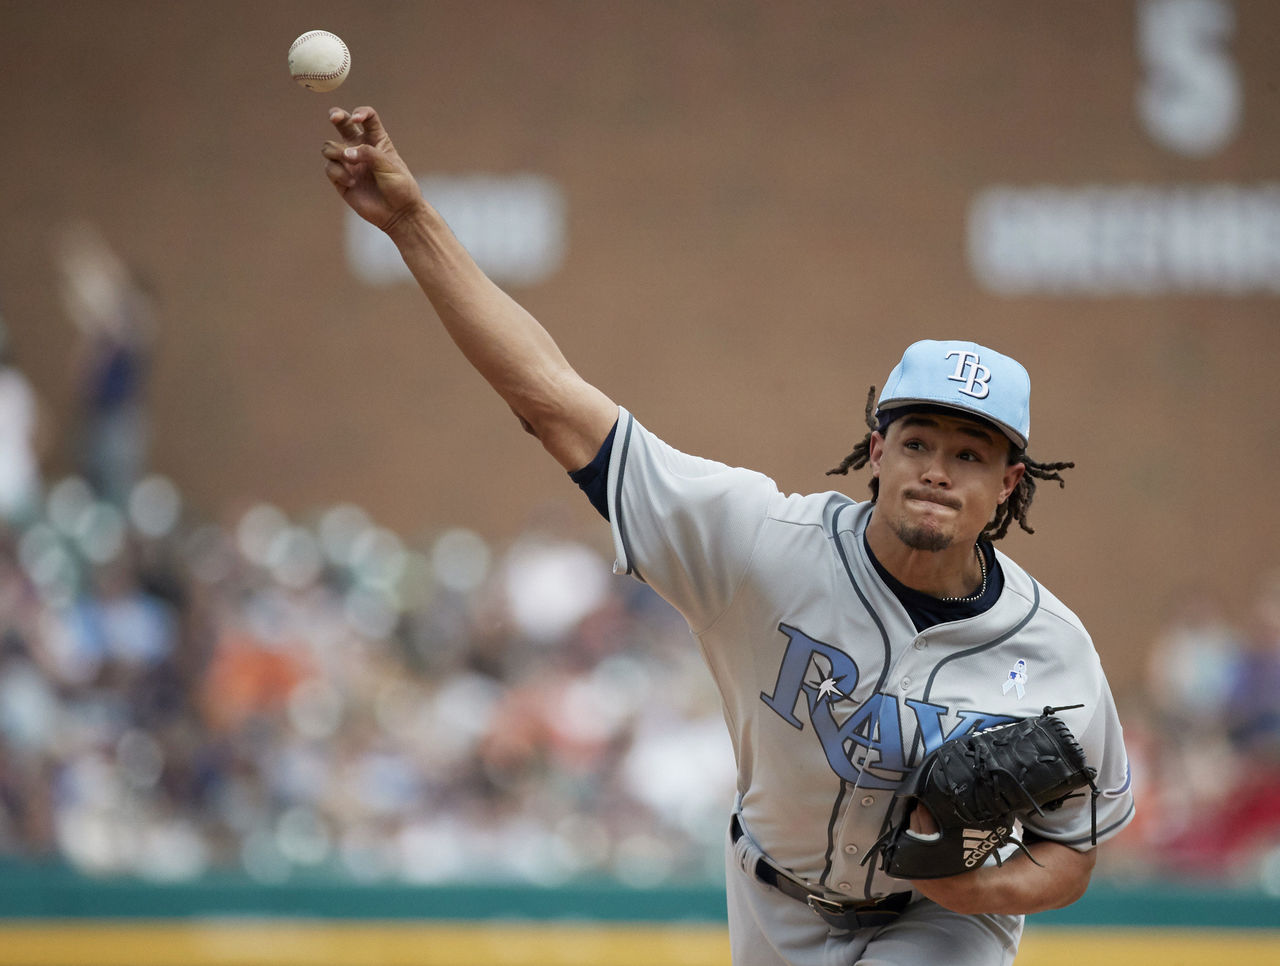 Cropped 2017 06 17t204043z 752154162 nocid rtrmadp 3 mlb tampa bay rays at detroit tigers